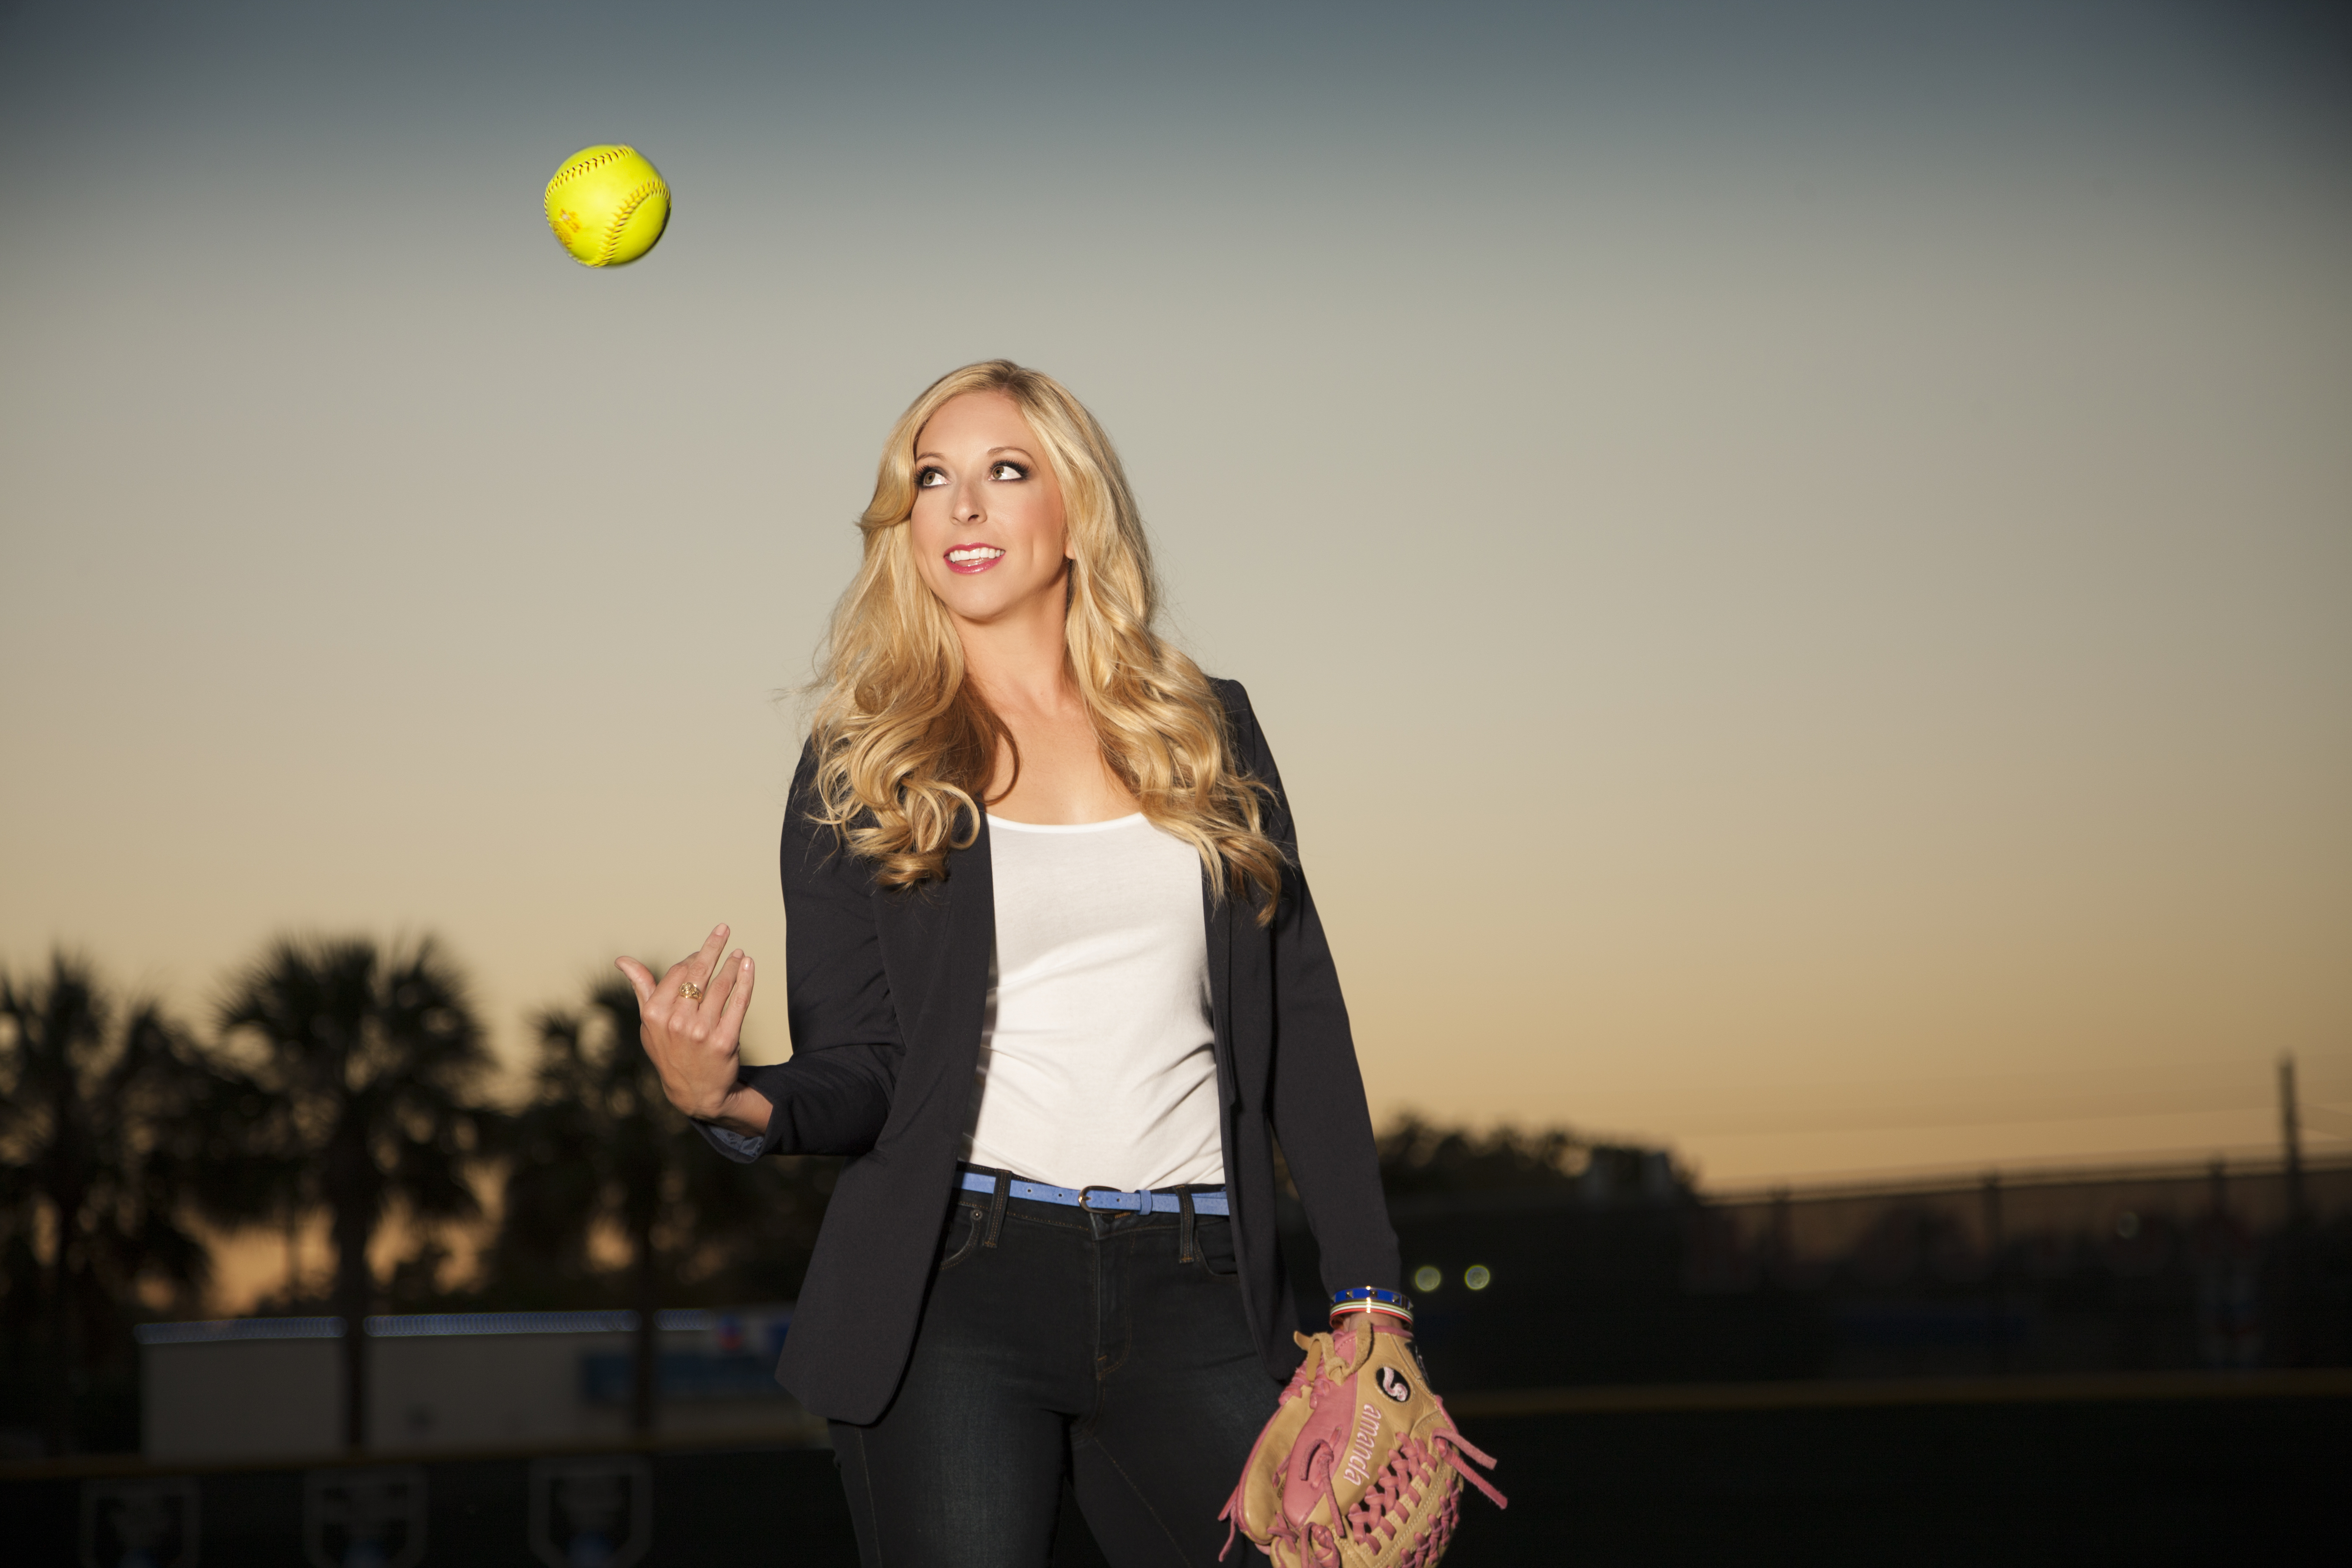 003 Essay Example Why I Love Softball White Shirt Throw Ball Up Unforgettable Full